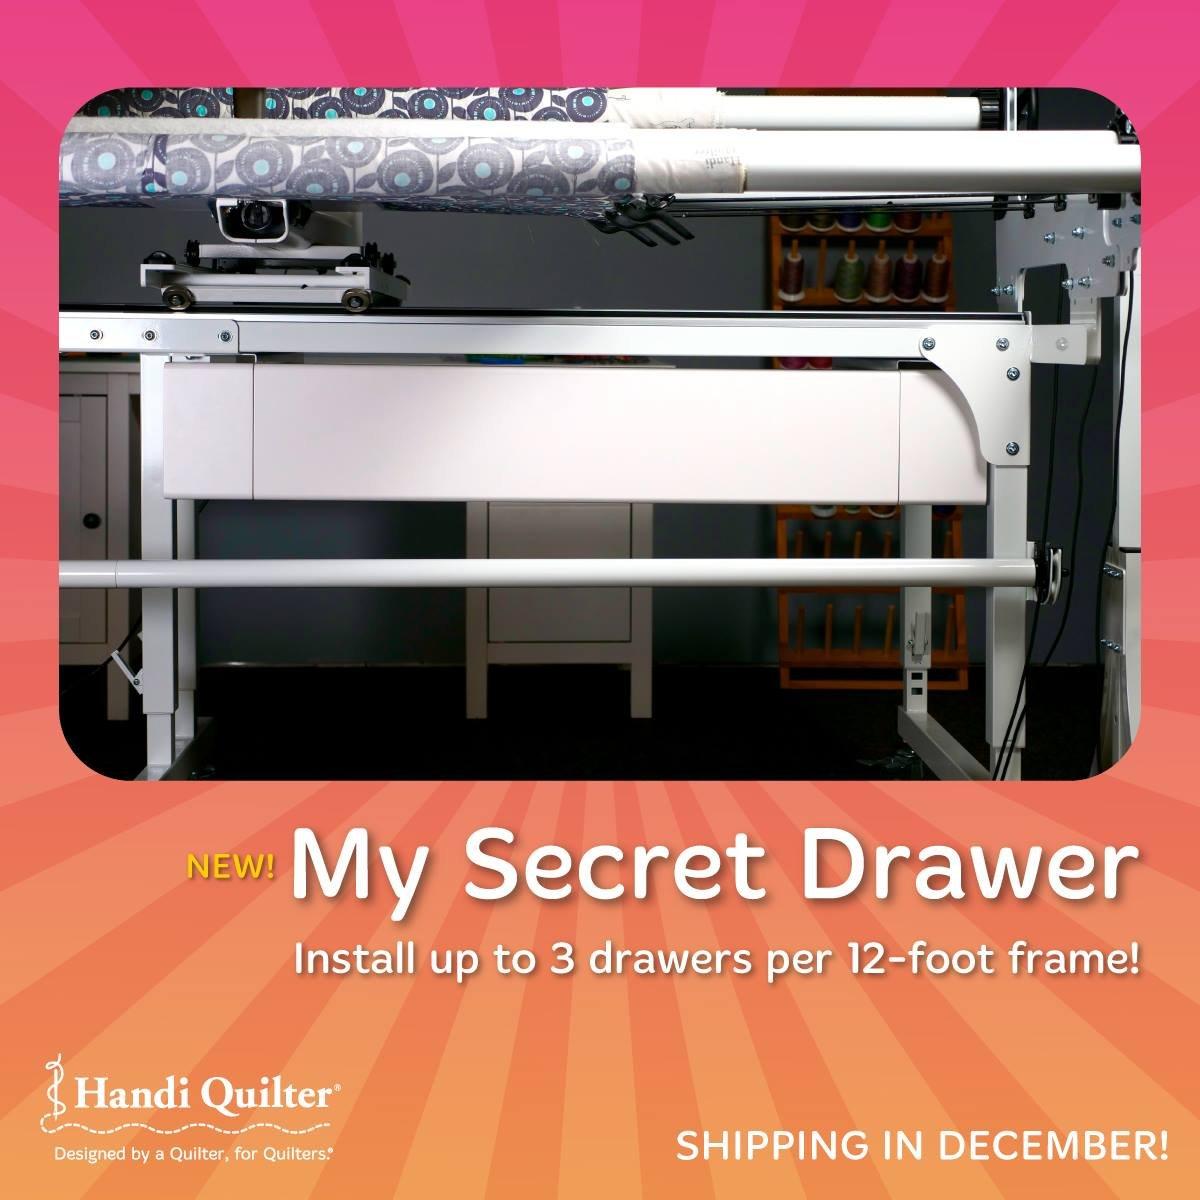 My Secret Drawer - Gallery Frame Handi Quilter